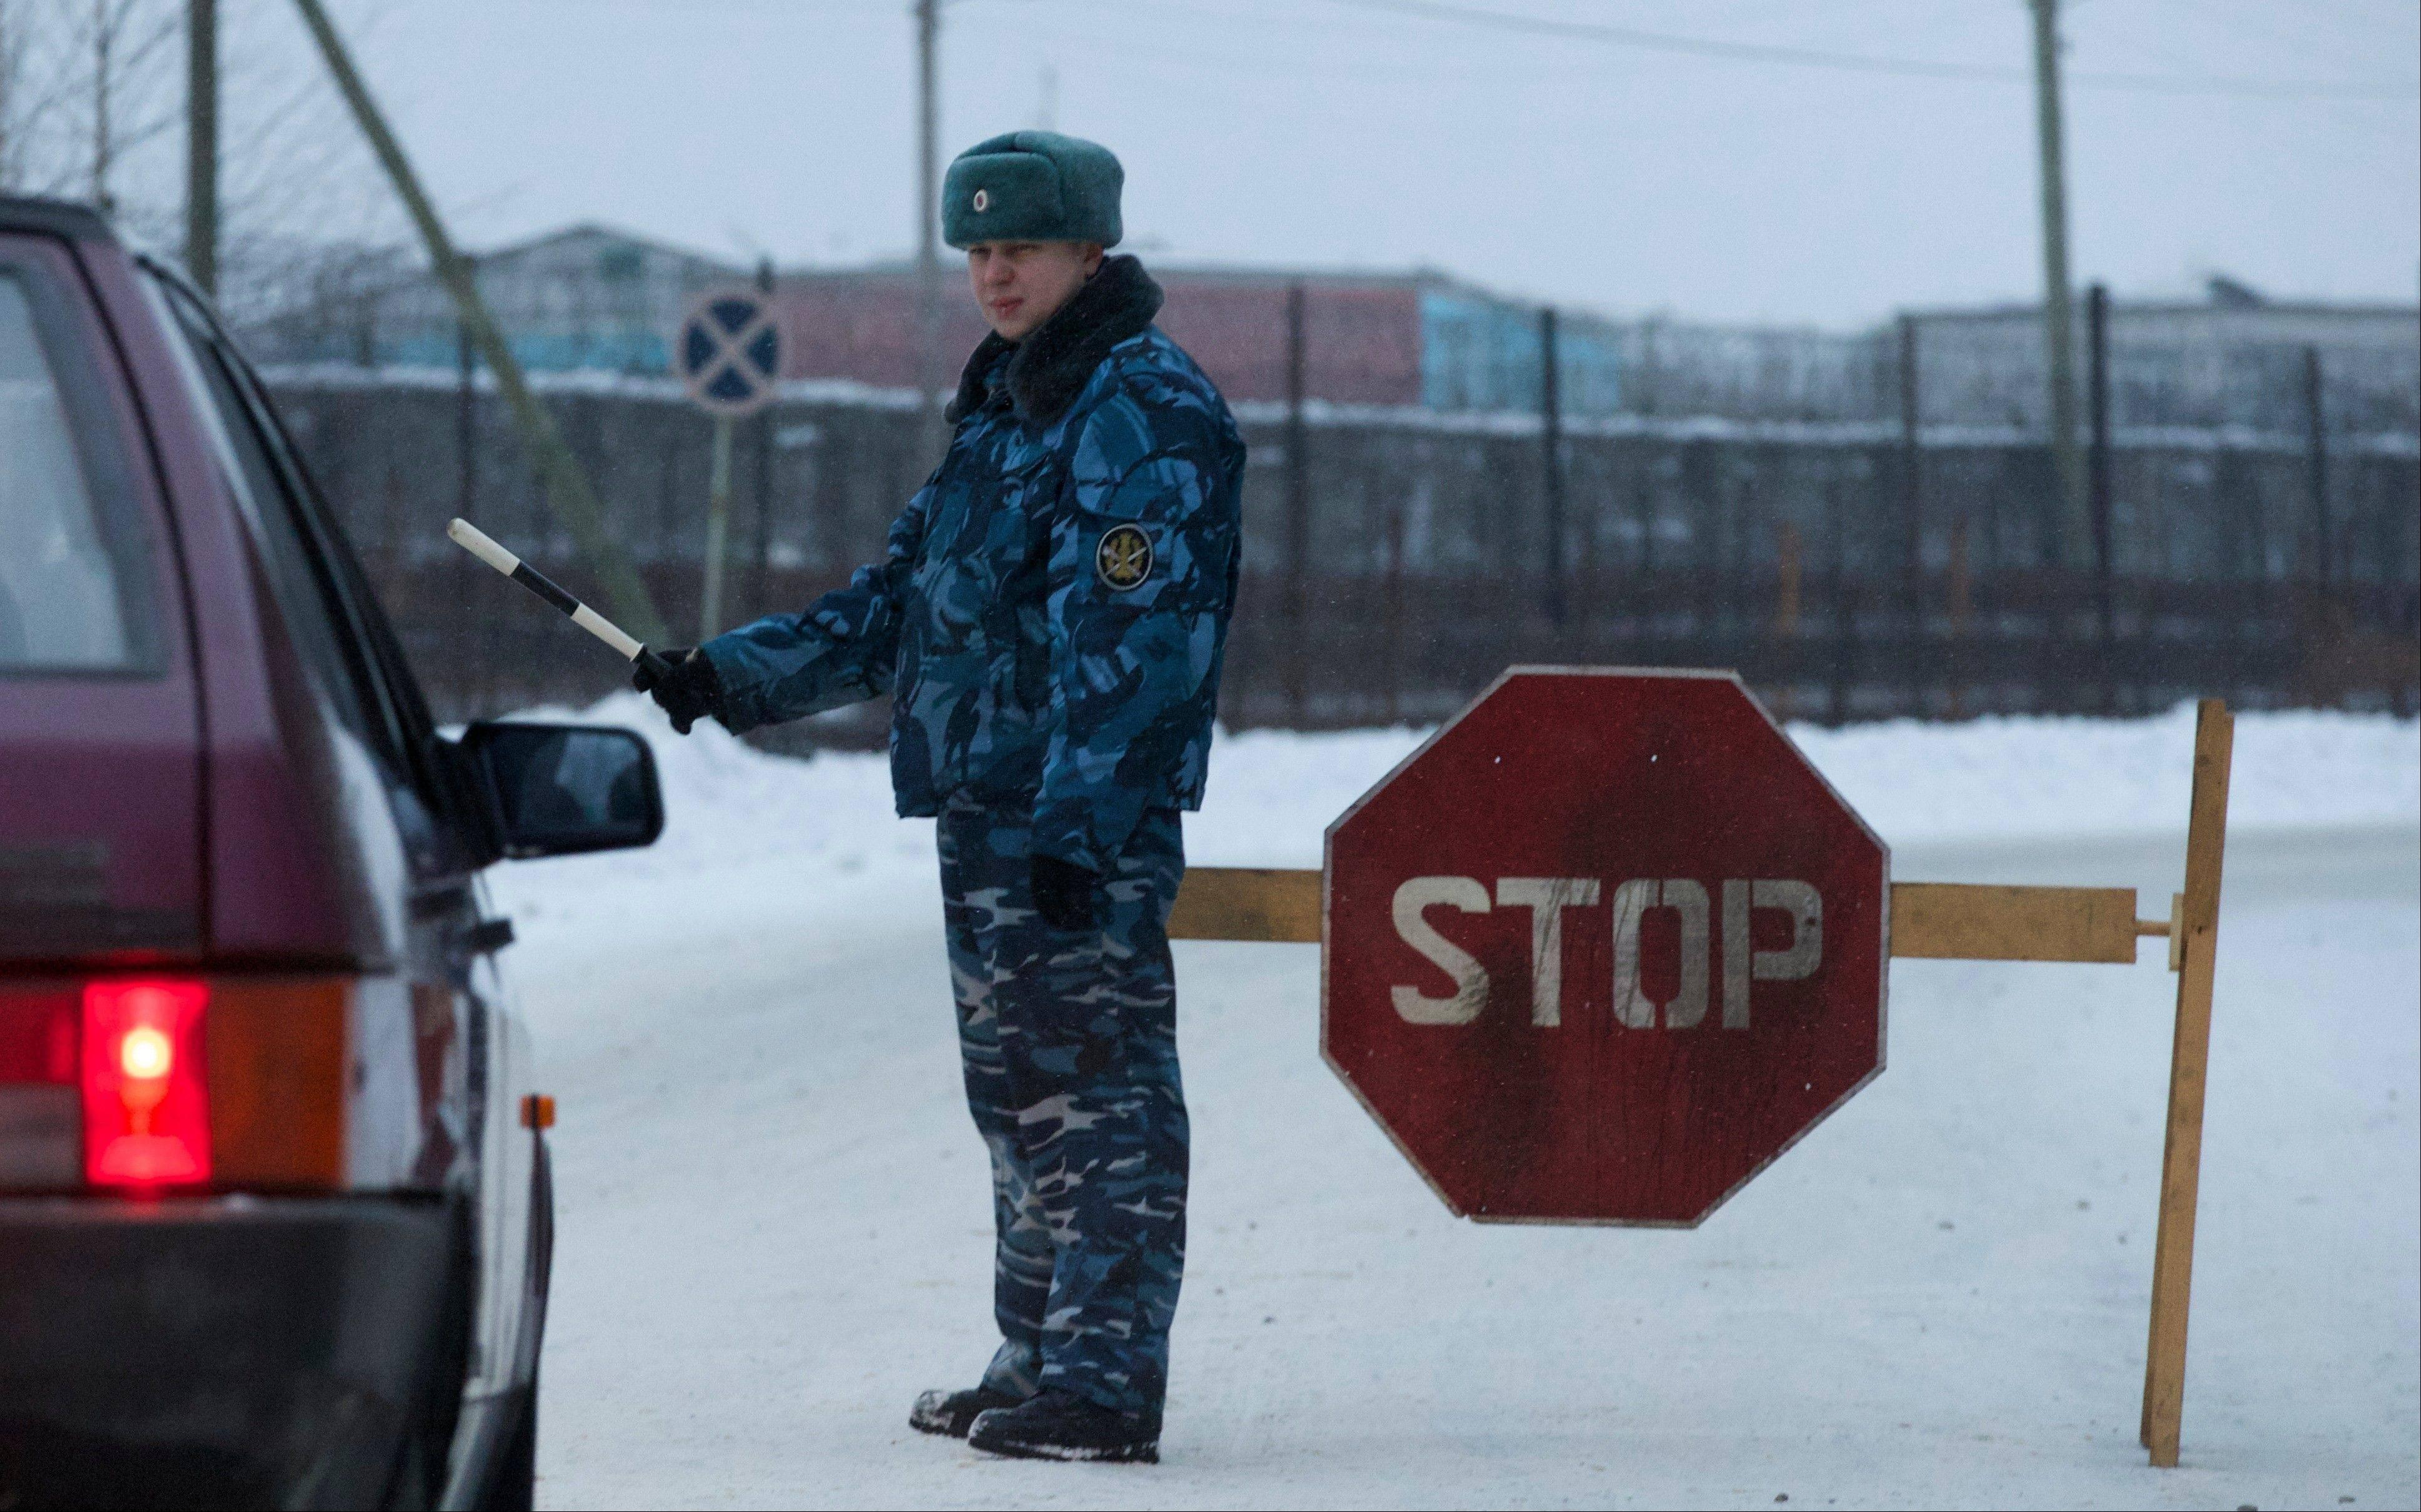 A prison service officer stops a car on the road at the prison where Mikhail Khodorkovsky was kept in Segezha, near Petrozavodsk, Russia, Friday, Dec. 20, 2013. Russia�s once richest man Mikhail Khodorkovsky, the arch rival of President Vladimir Putin, has been released from prison after a decade behind bars, his spokeswoman told the Associated Press on Friday.